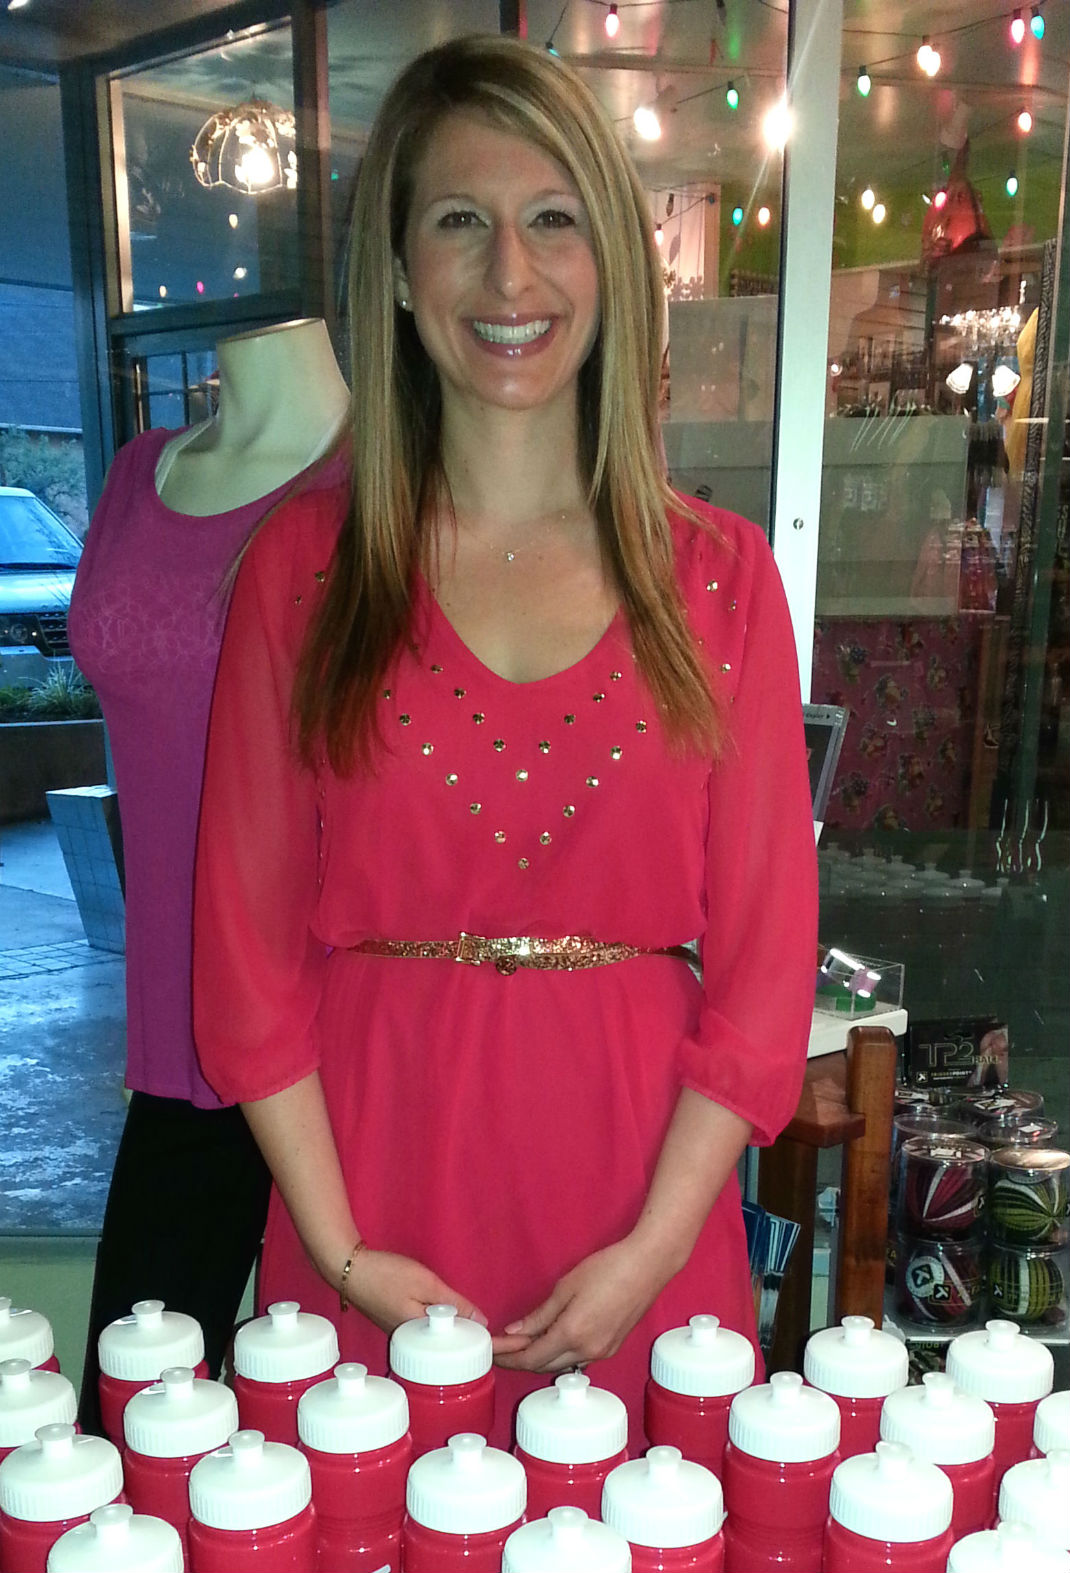 Woman in pink dress smiling